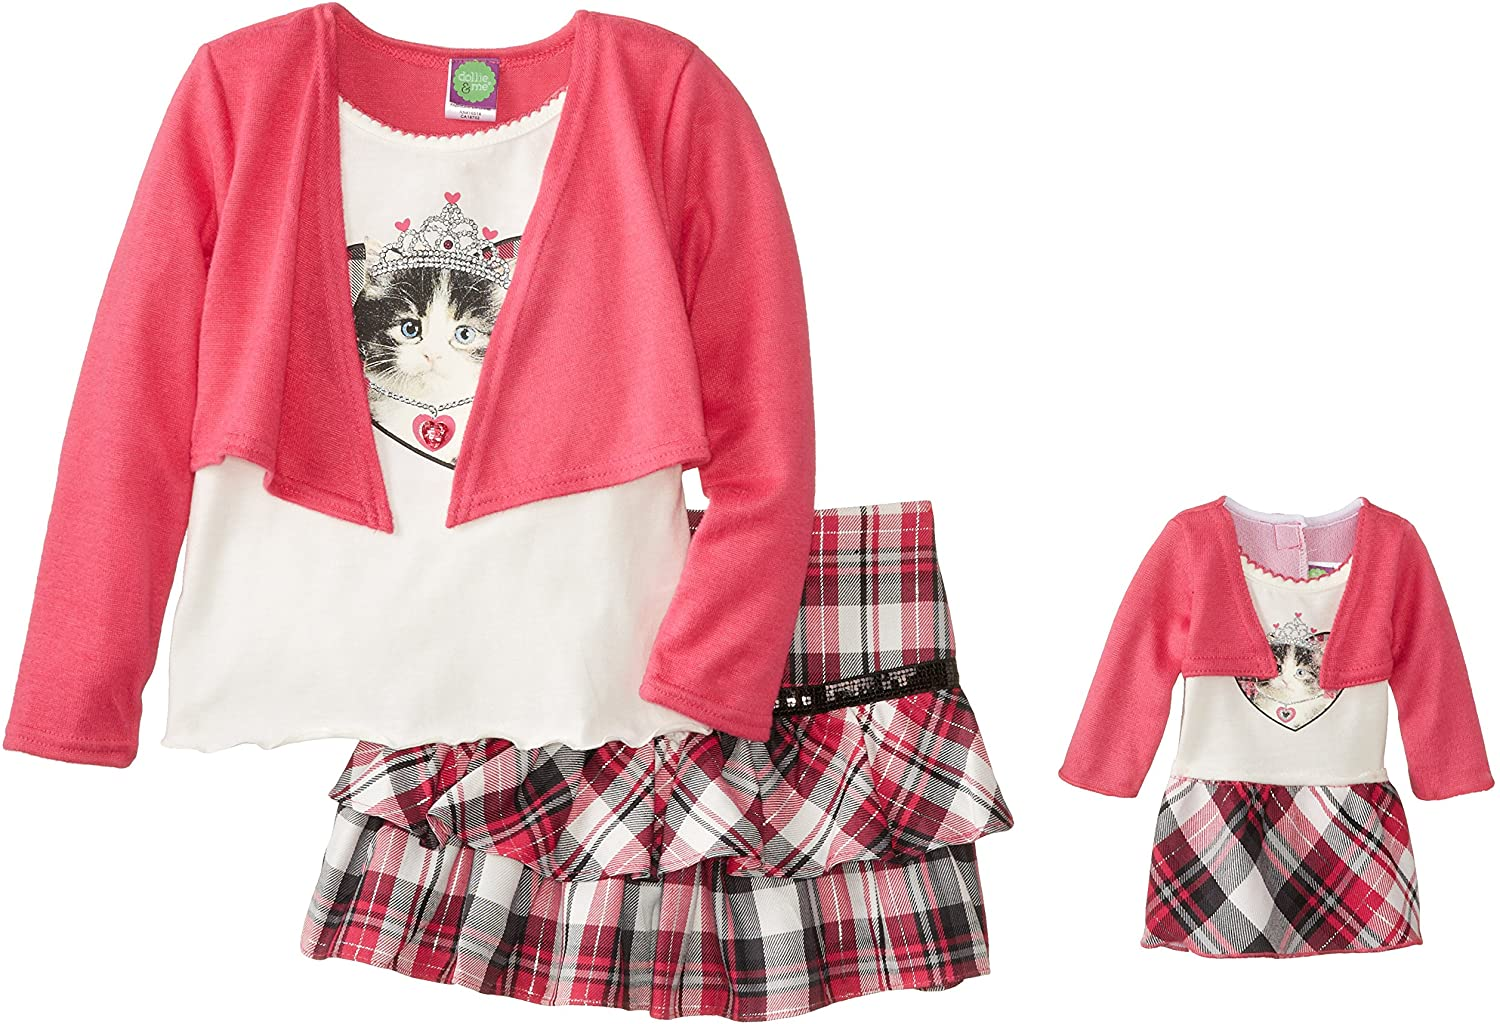 Dollie & Me Little Girls' Top with Open Cardi and Skirt